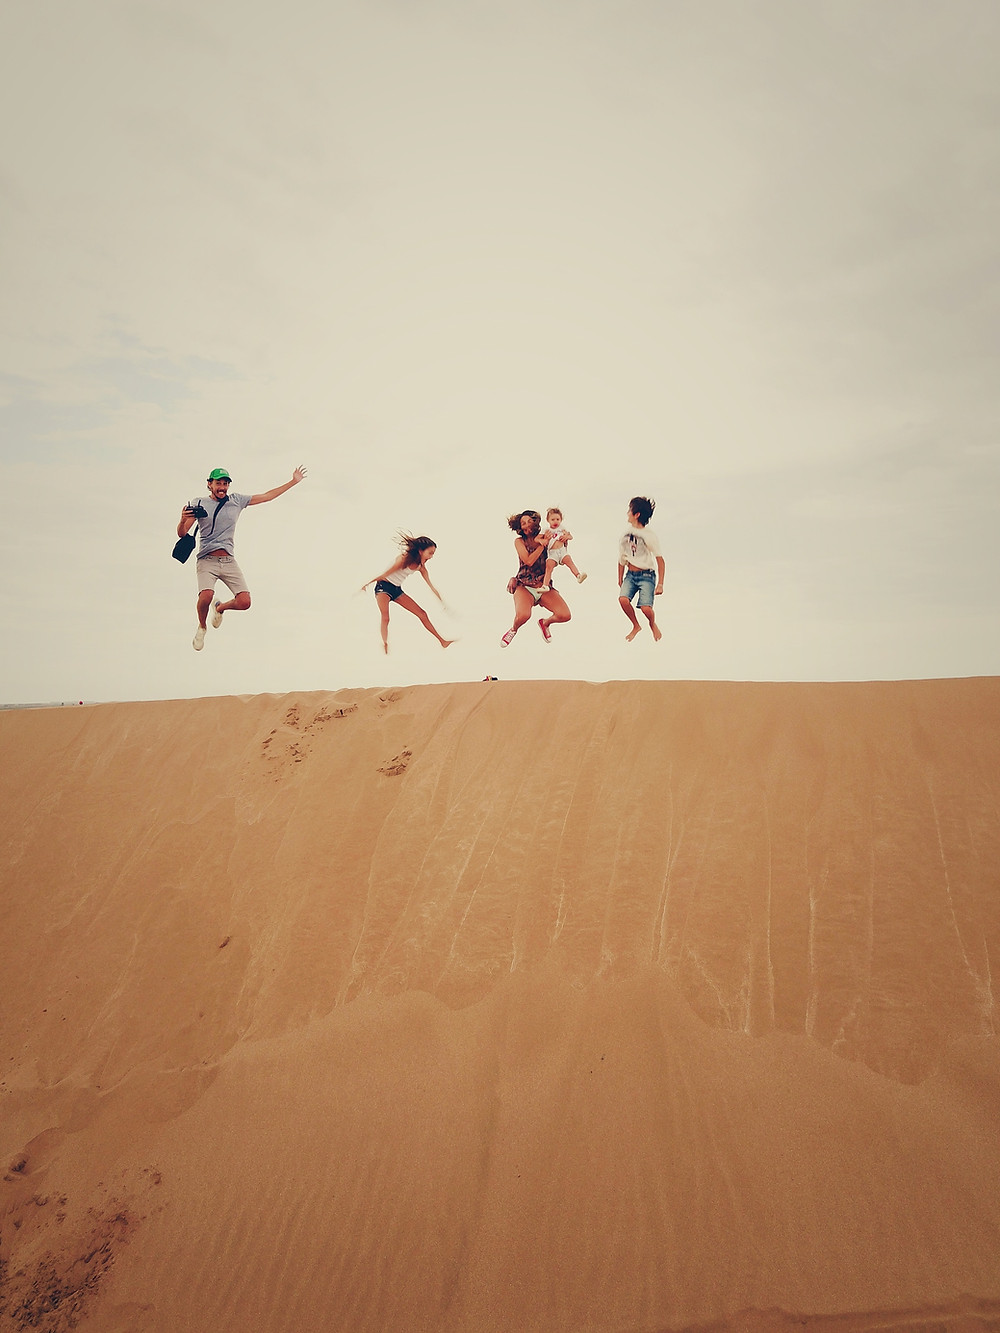 a family of 5 on holiday jumping in the air on top of a sand dune